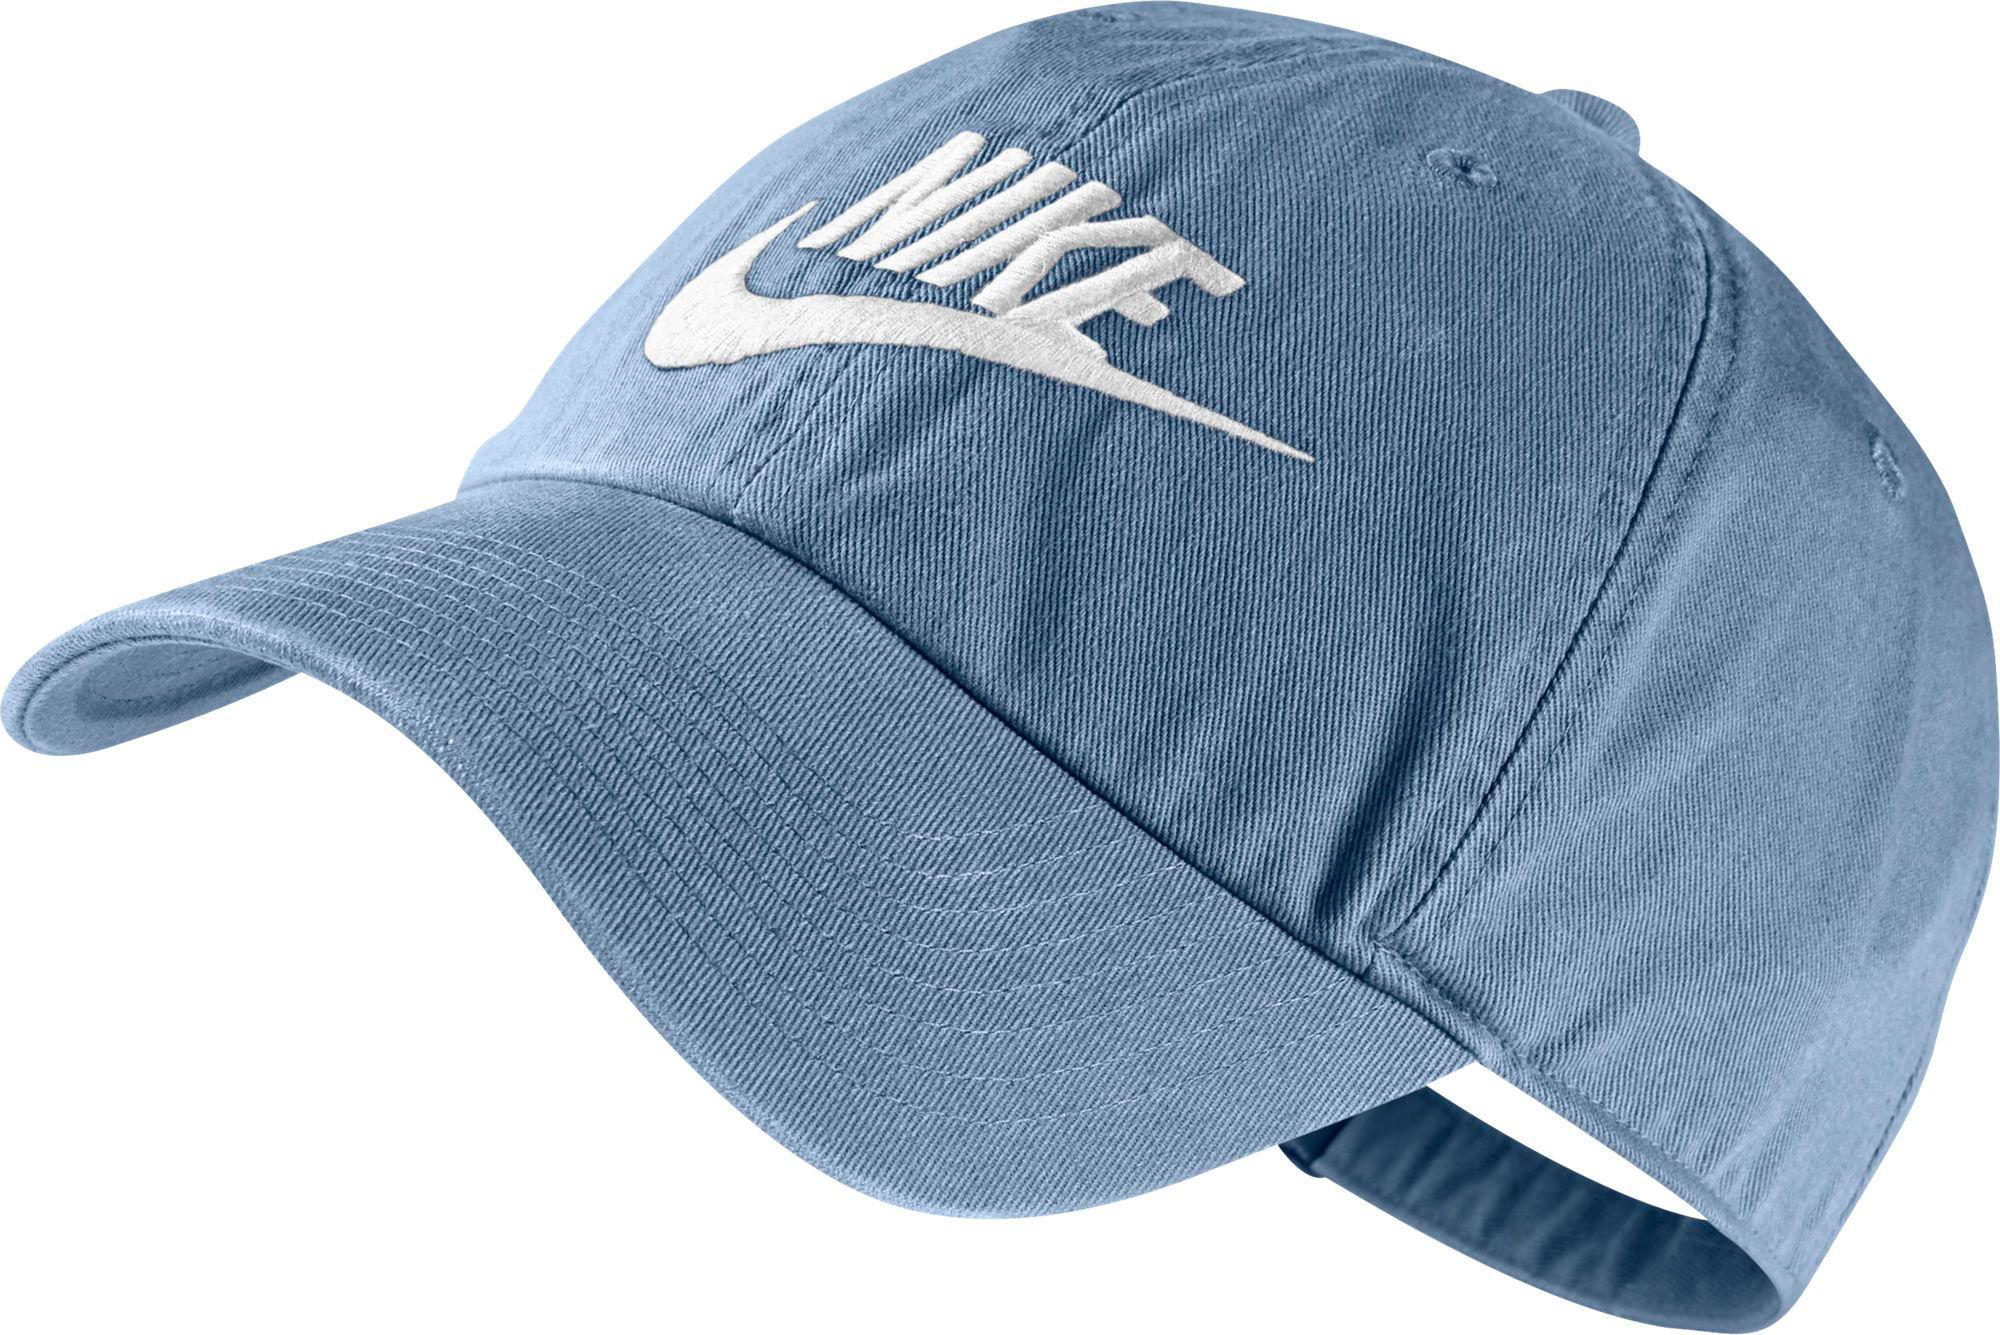 5d41f317b0b3c Nike Heritage 86 Futura Adjustable Hat in Blue for Men - Lyst